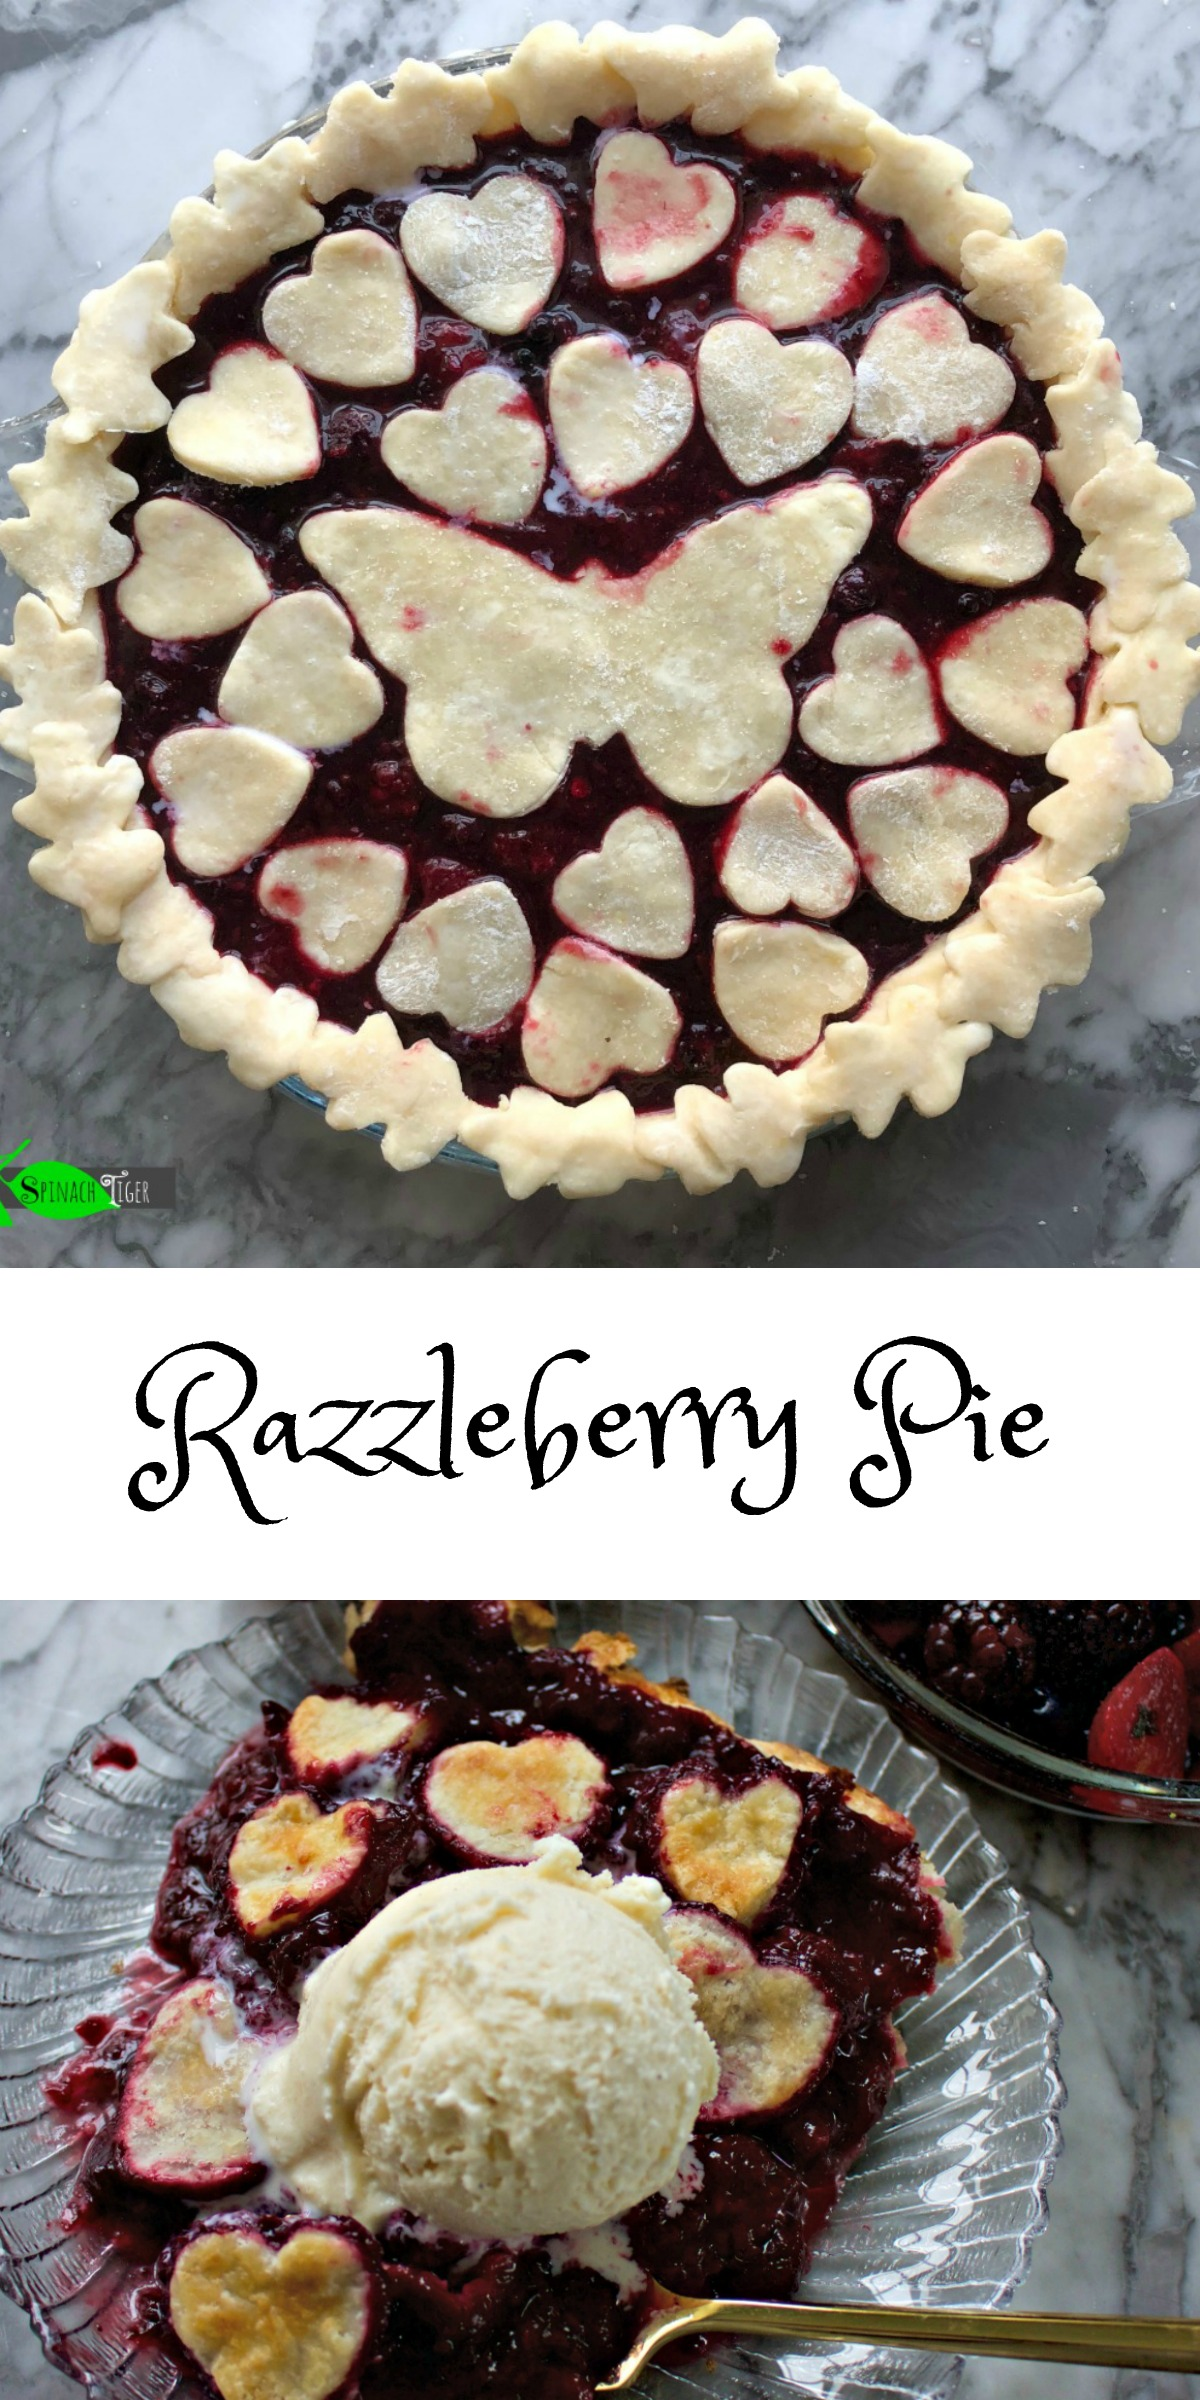 Razzelberry Pie recipe from Spinach Tiger (Mixture of several berries and a gluten free option)